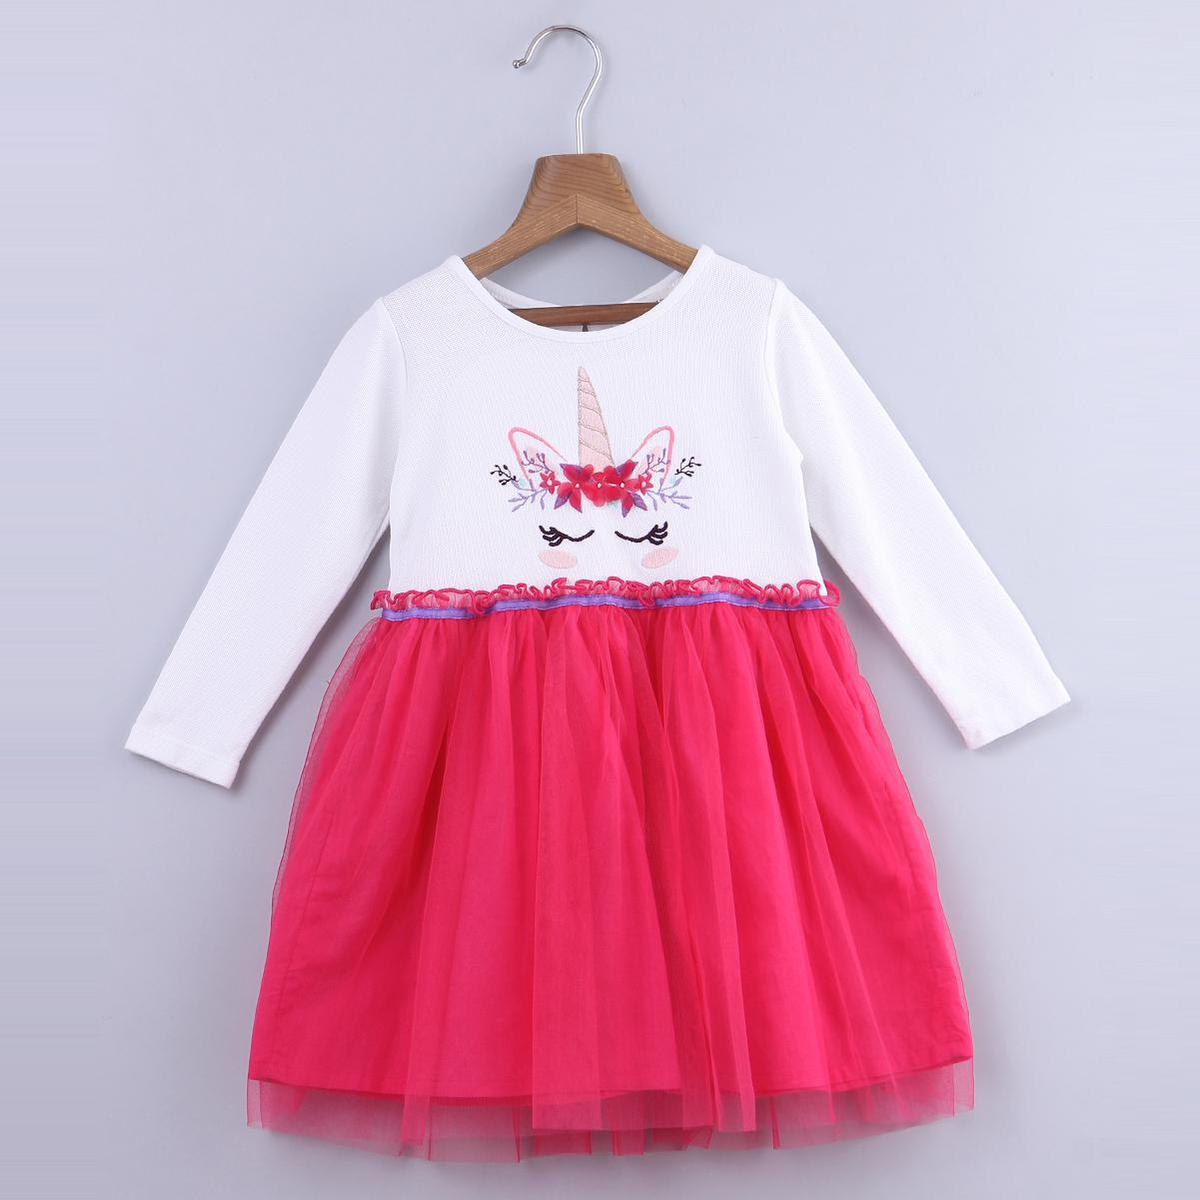 Beebay - Pink Colored Unicorn Embroidery Tutu Cotton Dress For Infants Girls